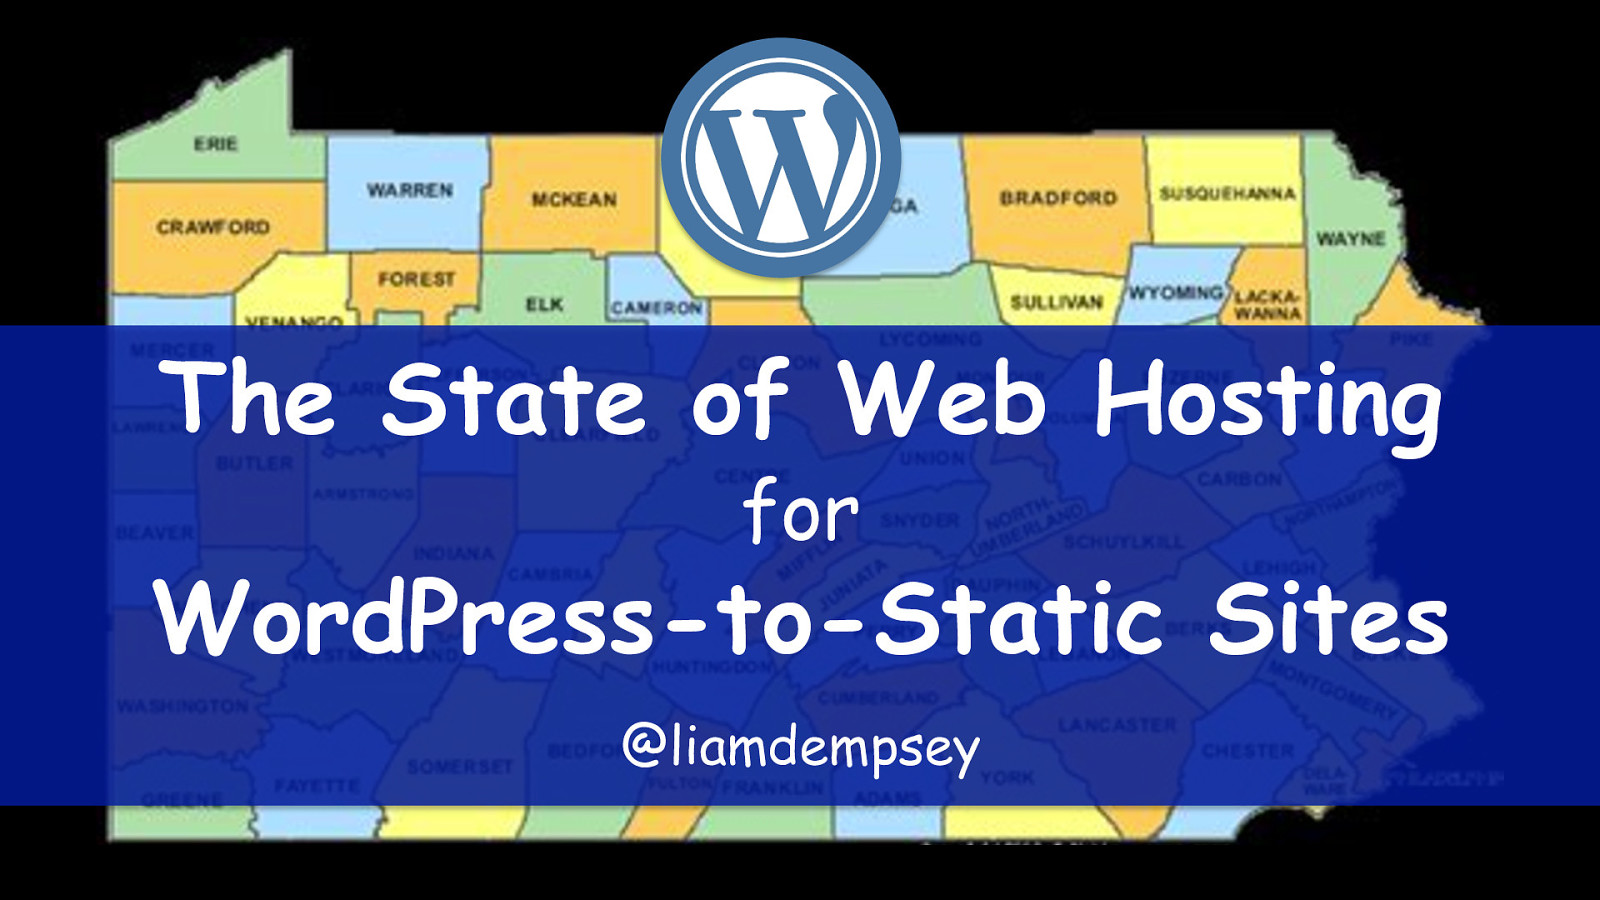 The State of Web Hosting for WordPress-to-Static Sites